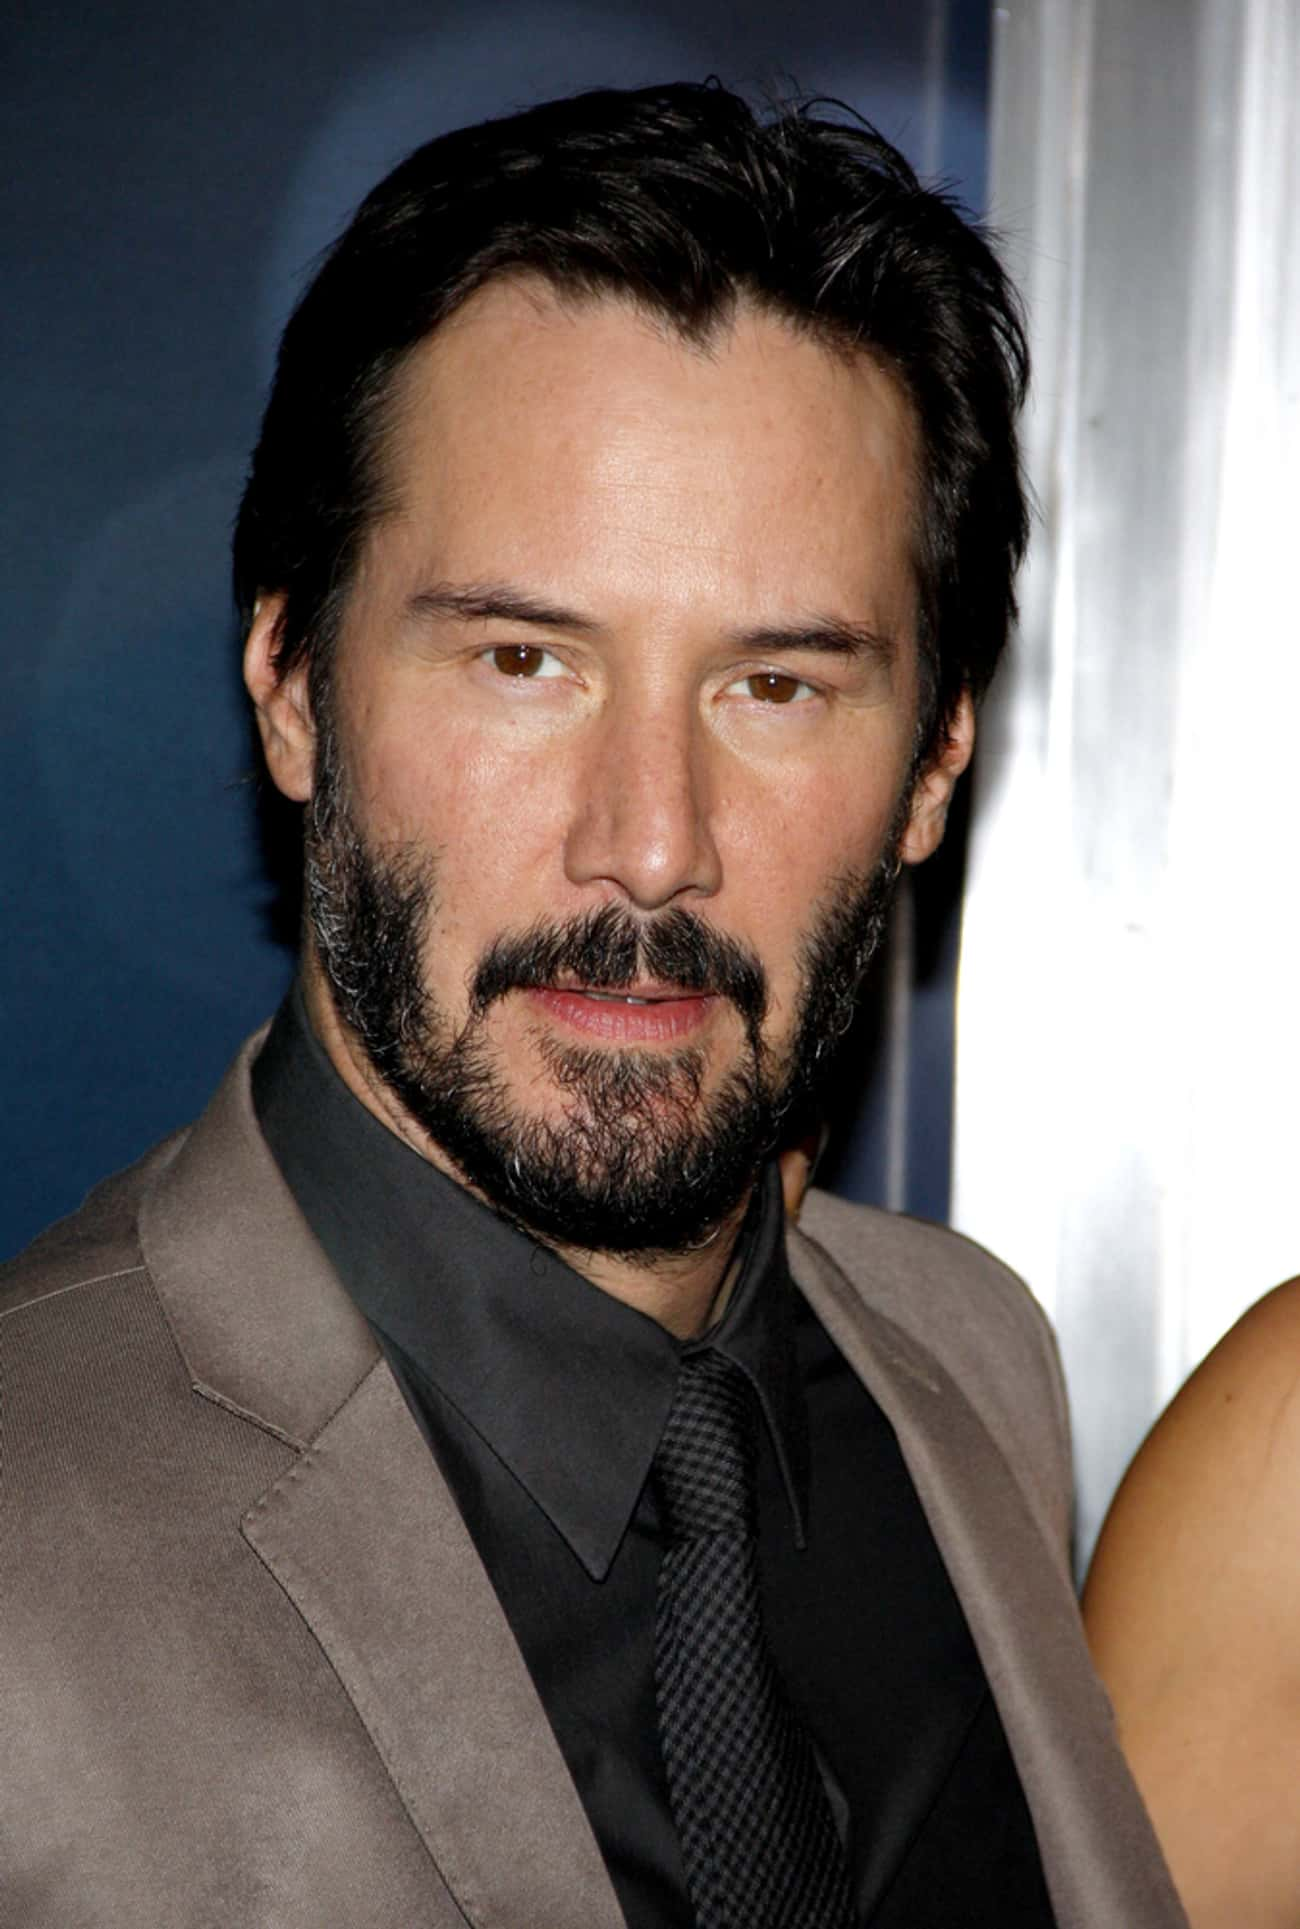 Keanu Reeves - Beirut, Lebanon is listed (or ranked) 2 on the list Celebrities Who Weren't Born Where You Think